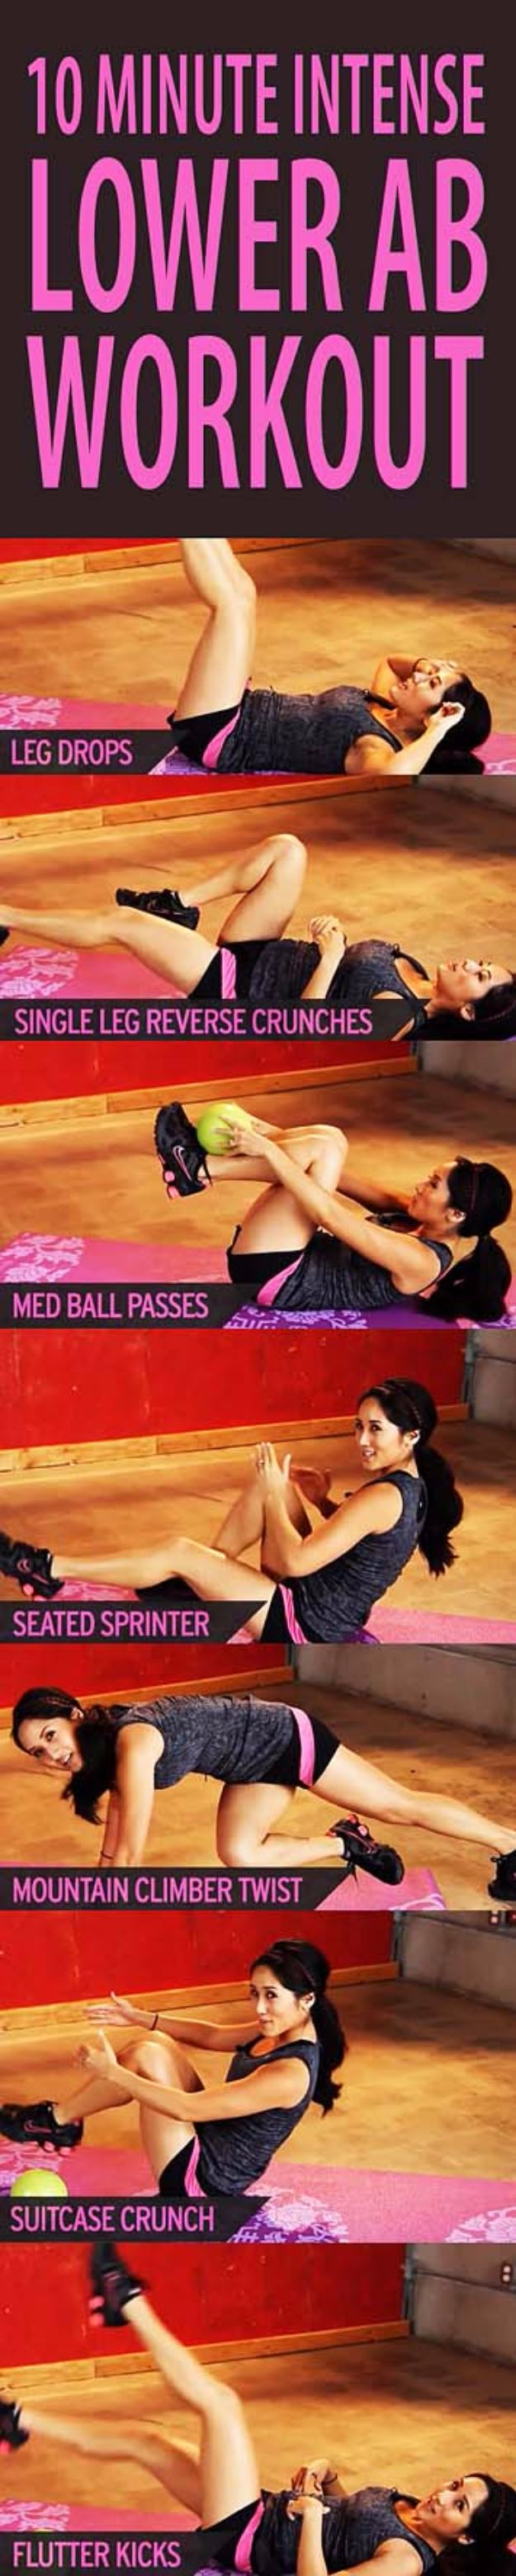 Best Quick At Home Workouts - 10 Minute Intense Lower Ab Workout - Easy Tutorials and Work Out Ideas for Strength Training and Exercises - Step by Step Tutorials for Butt Workouts, Abs Tummy and Stomach, Legs, Arms, Chest and Back - Fast 5 and 10 Minute Workouts You Can Do On Your Lunch Break, In Car, in Hotel #exercise #health